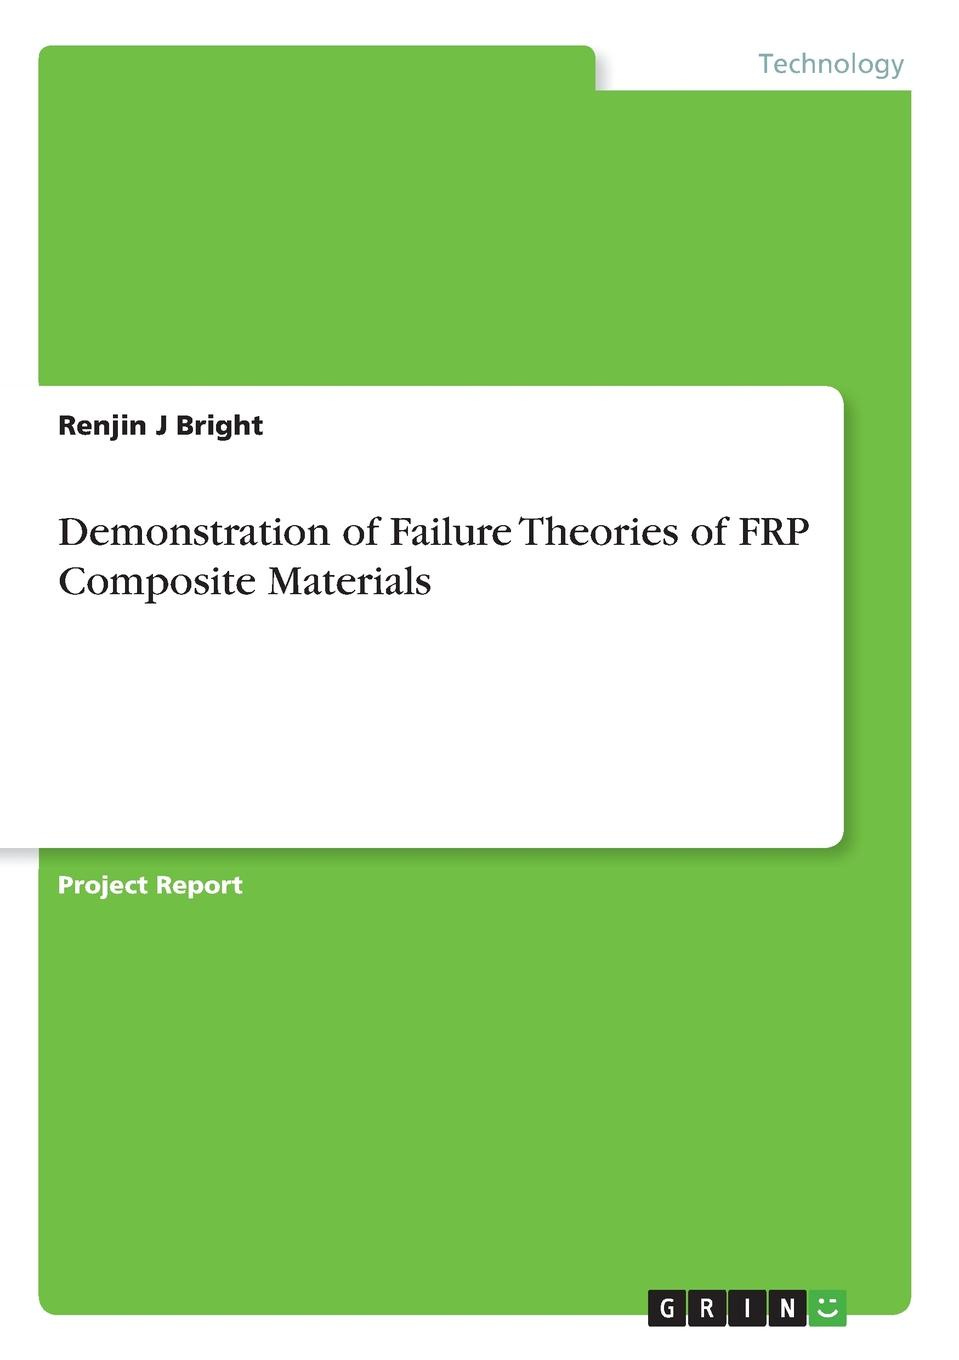 Renjin J Bright Demonstration of Failure Theories of FRP Composite Materials